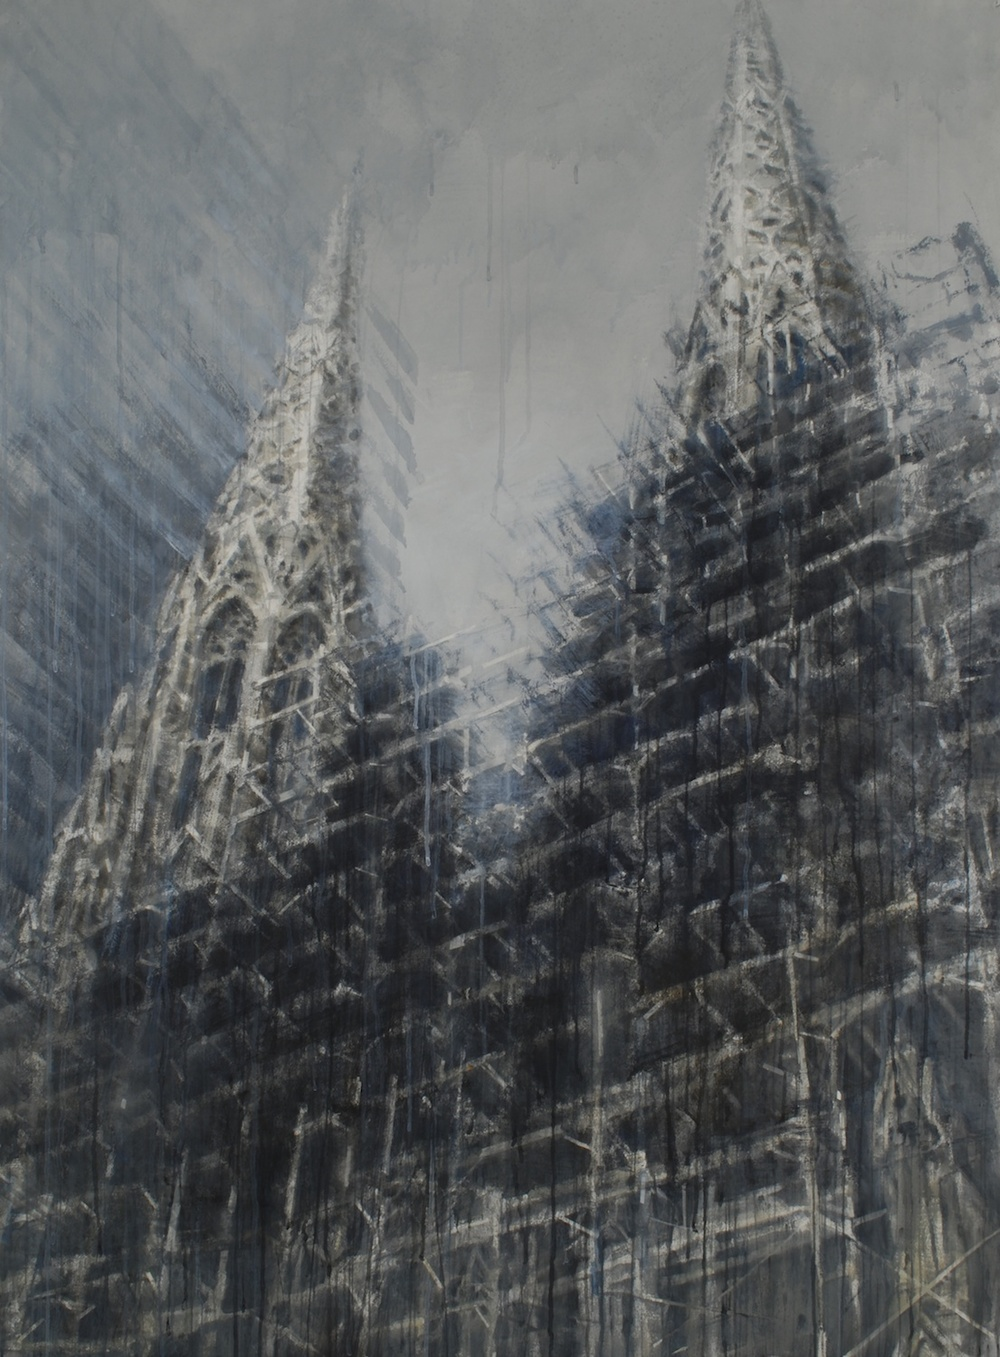 St. Patrick's, NYC, 72x52 inches